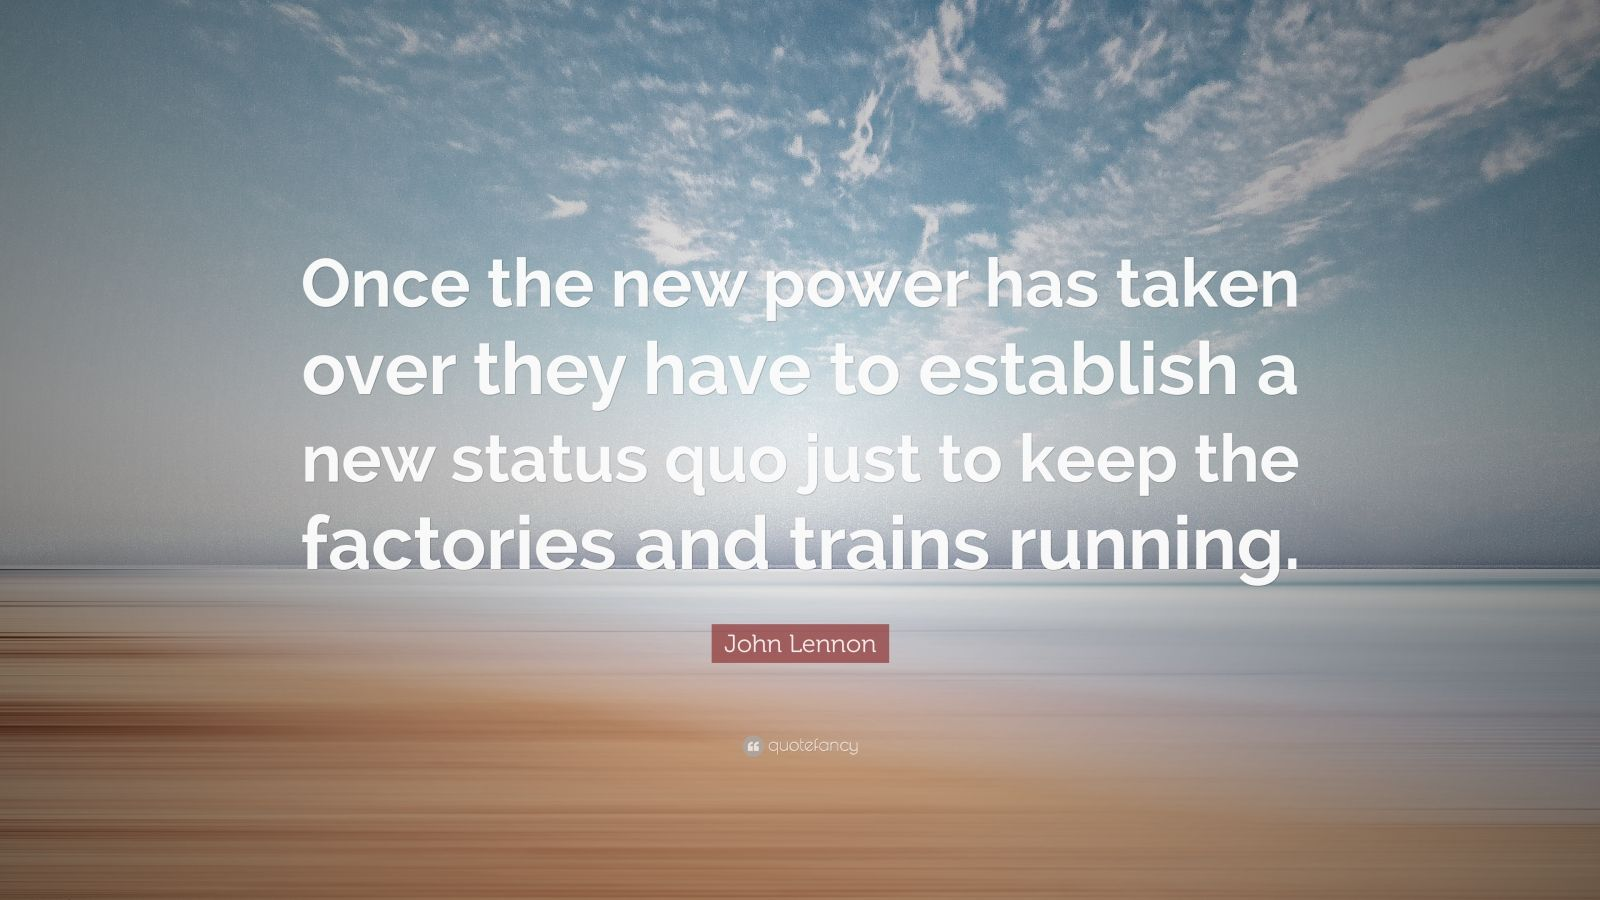 """John Lennon Quote: """"Once the new power has taken over they have to establish a new status quo just to keep the factories and trains running."""""""